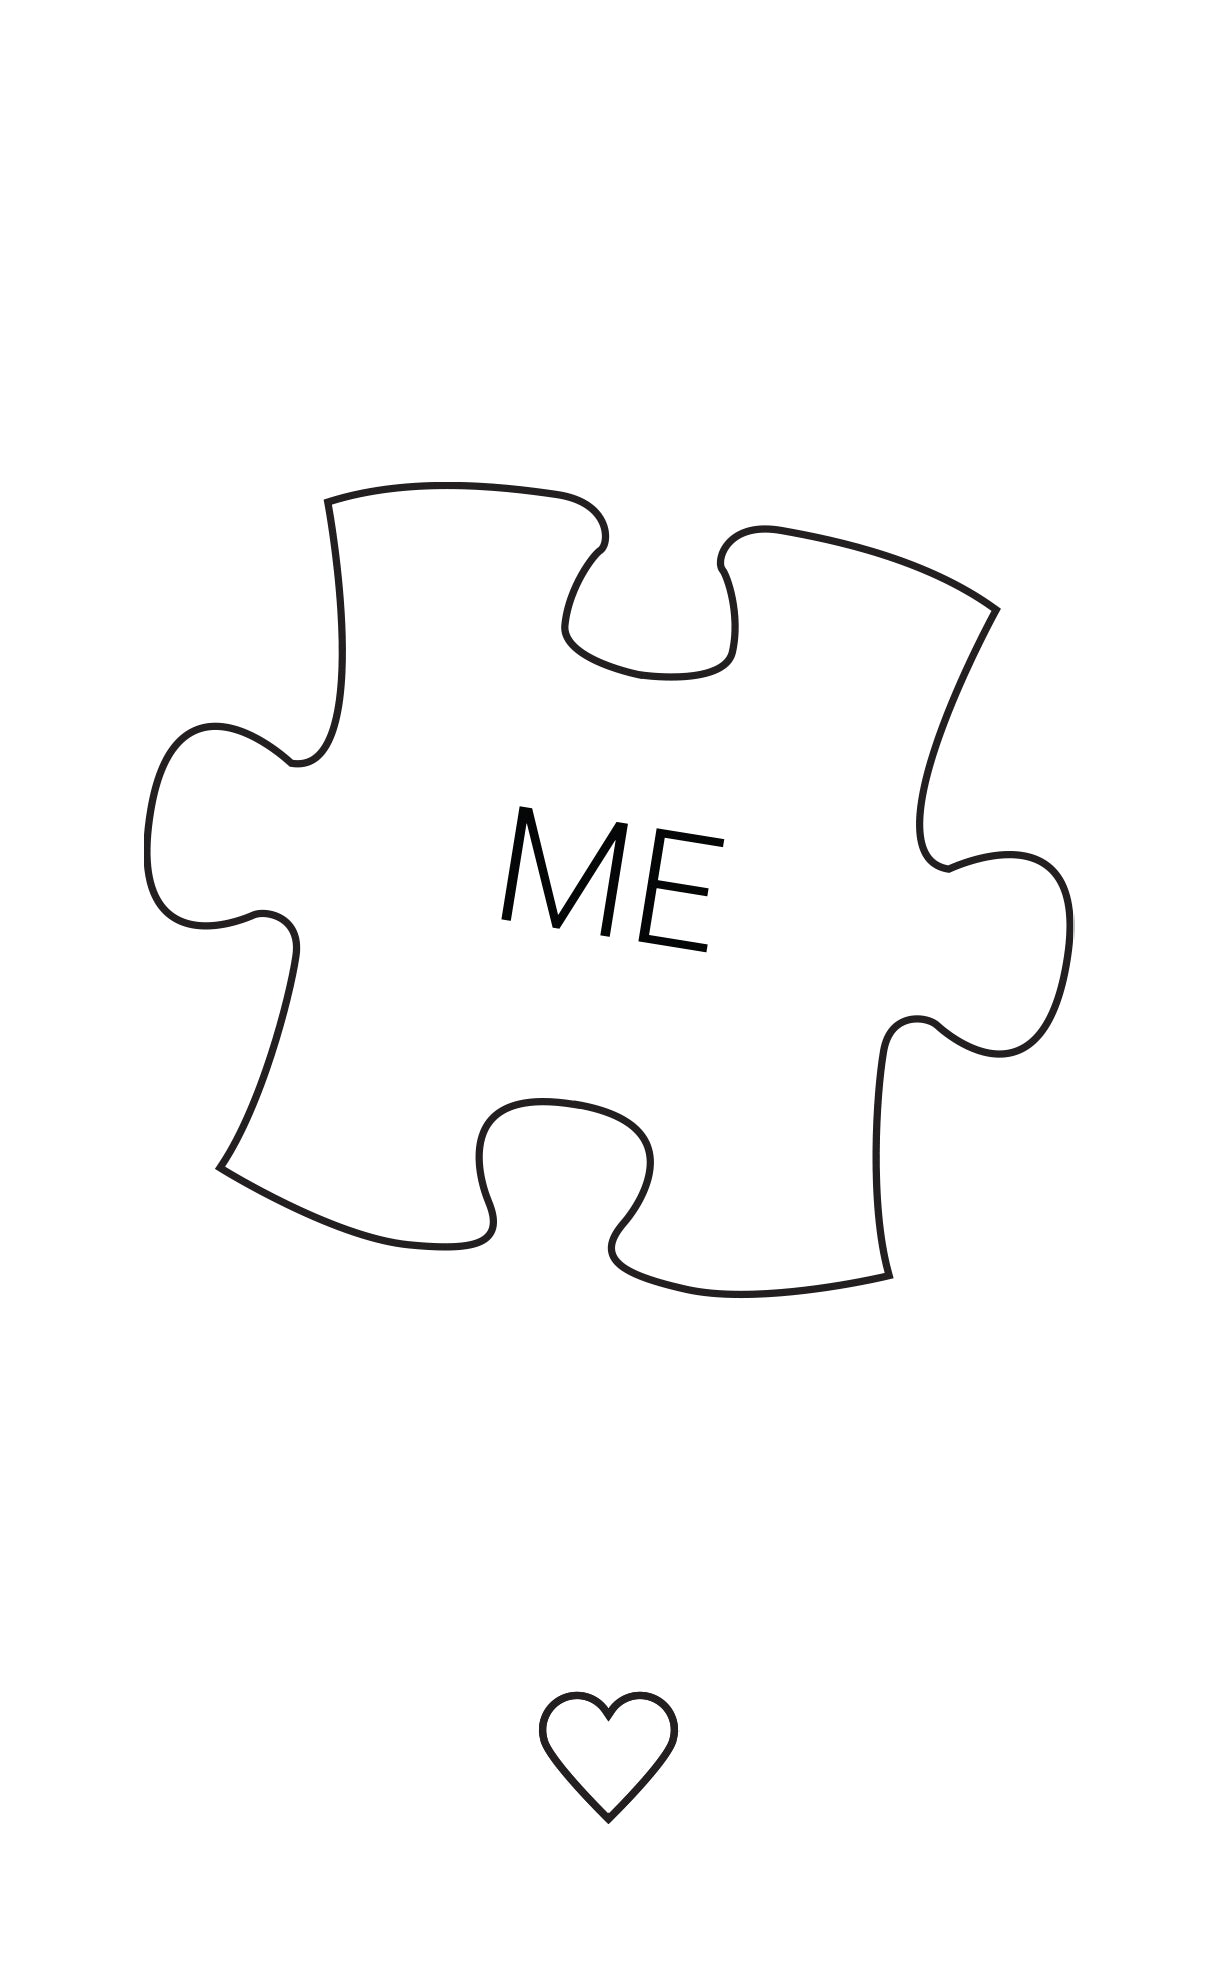 White puzzle piece with 'Me' written on it